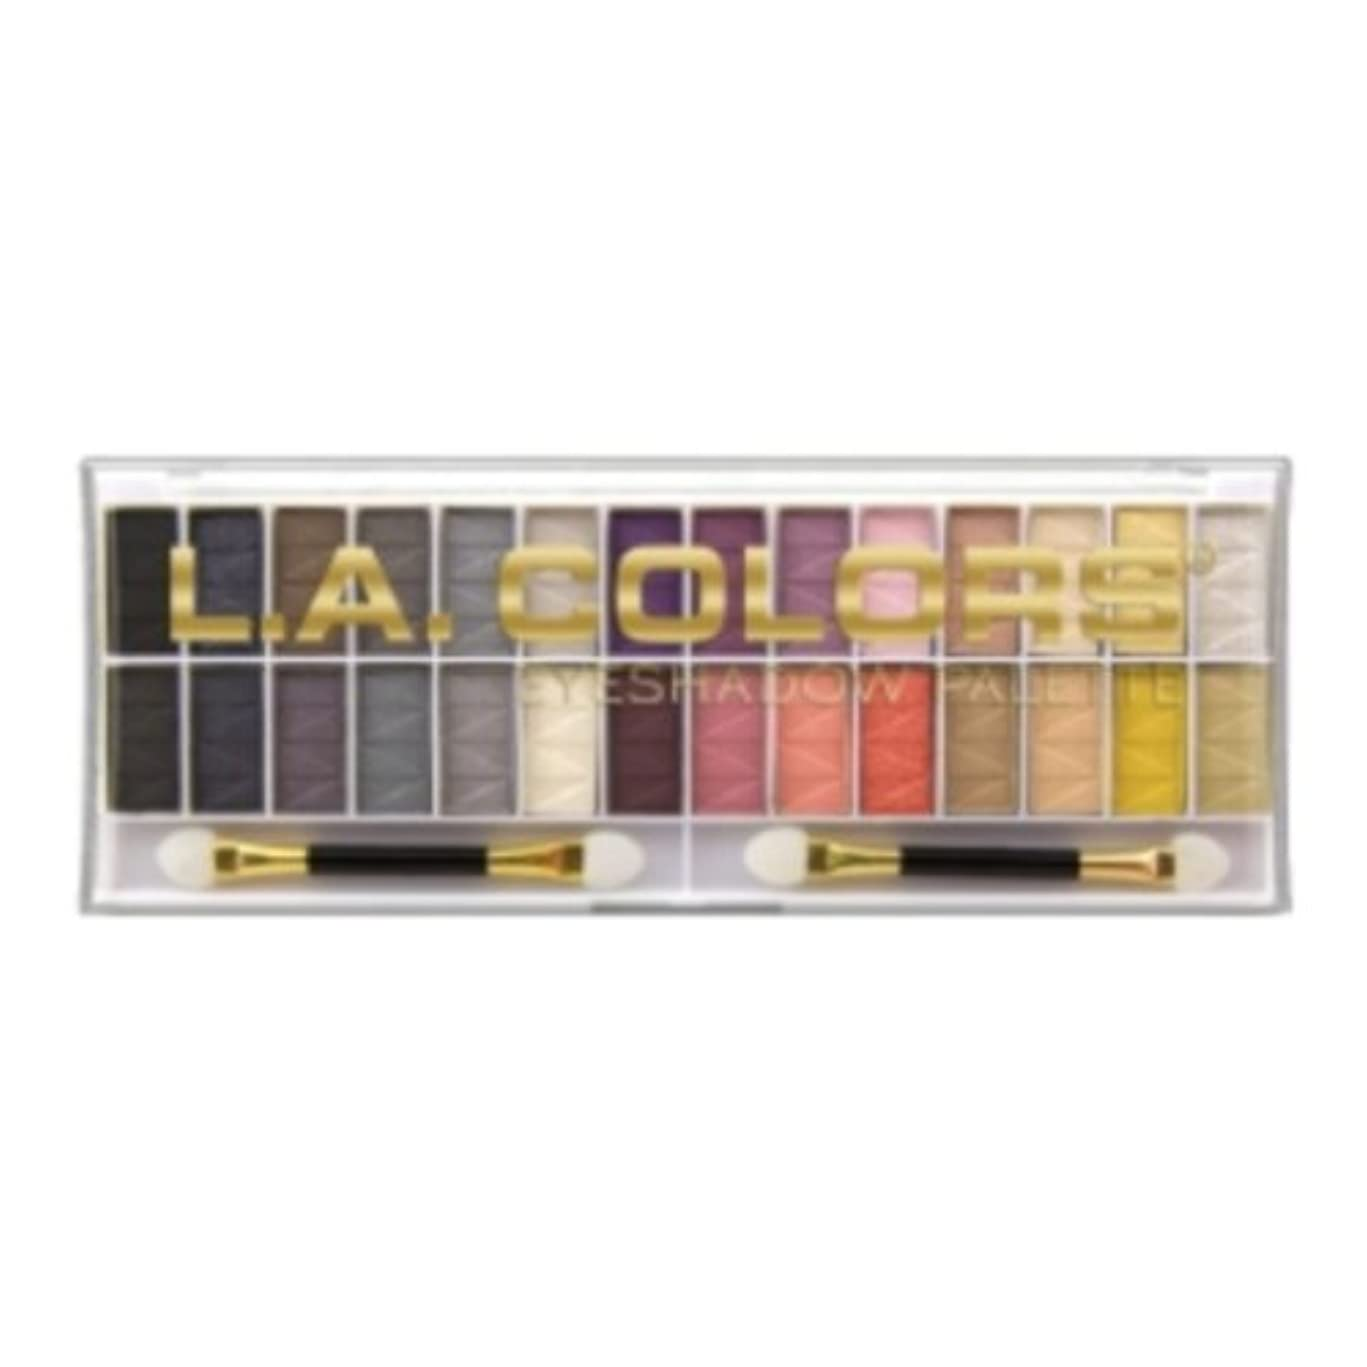 L.A. COLORS 28 Color Eyeshadow Palette - Malibu (並行輸入品)